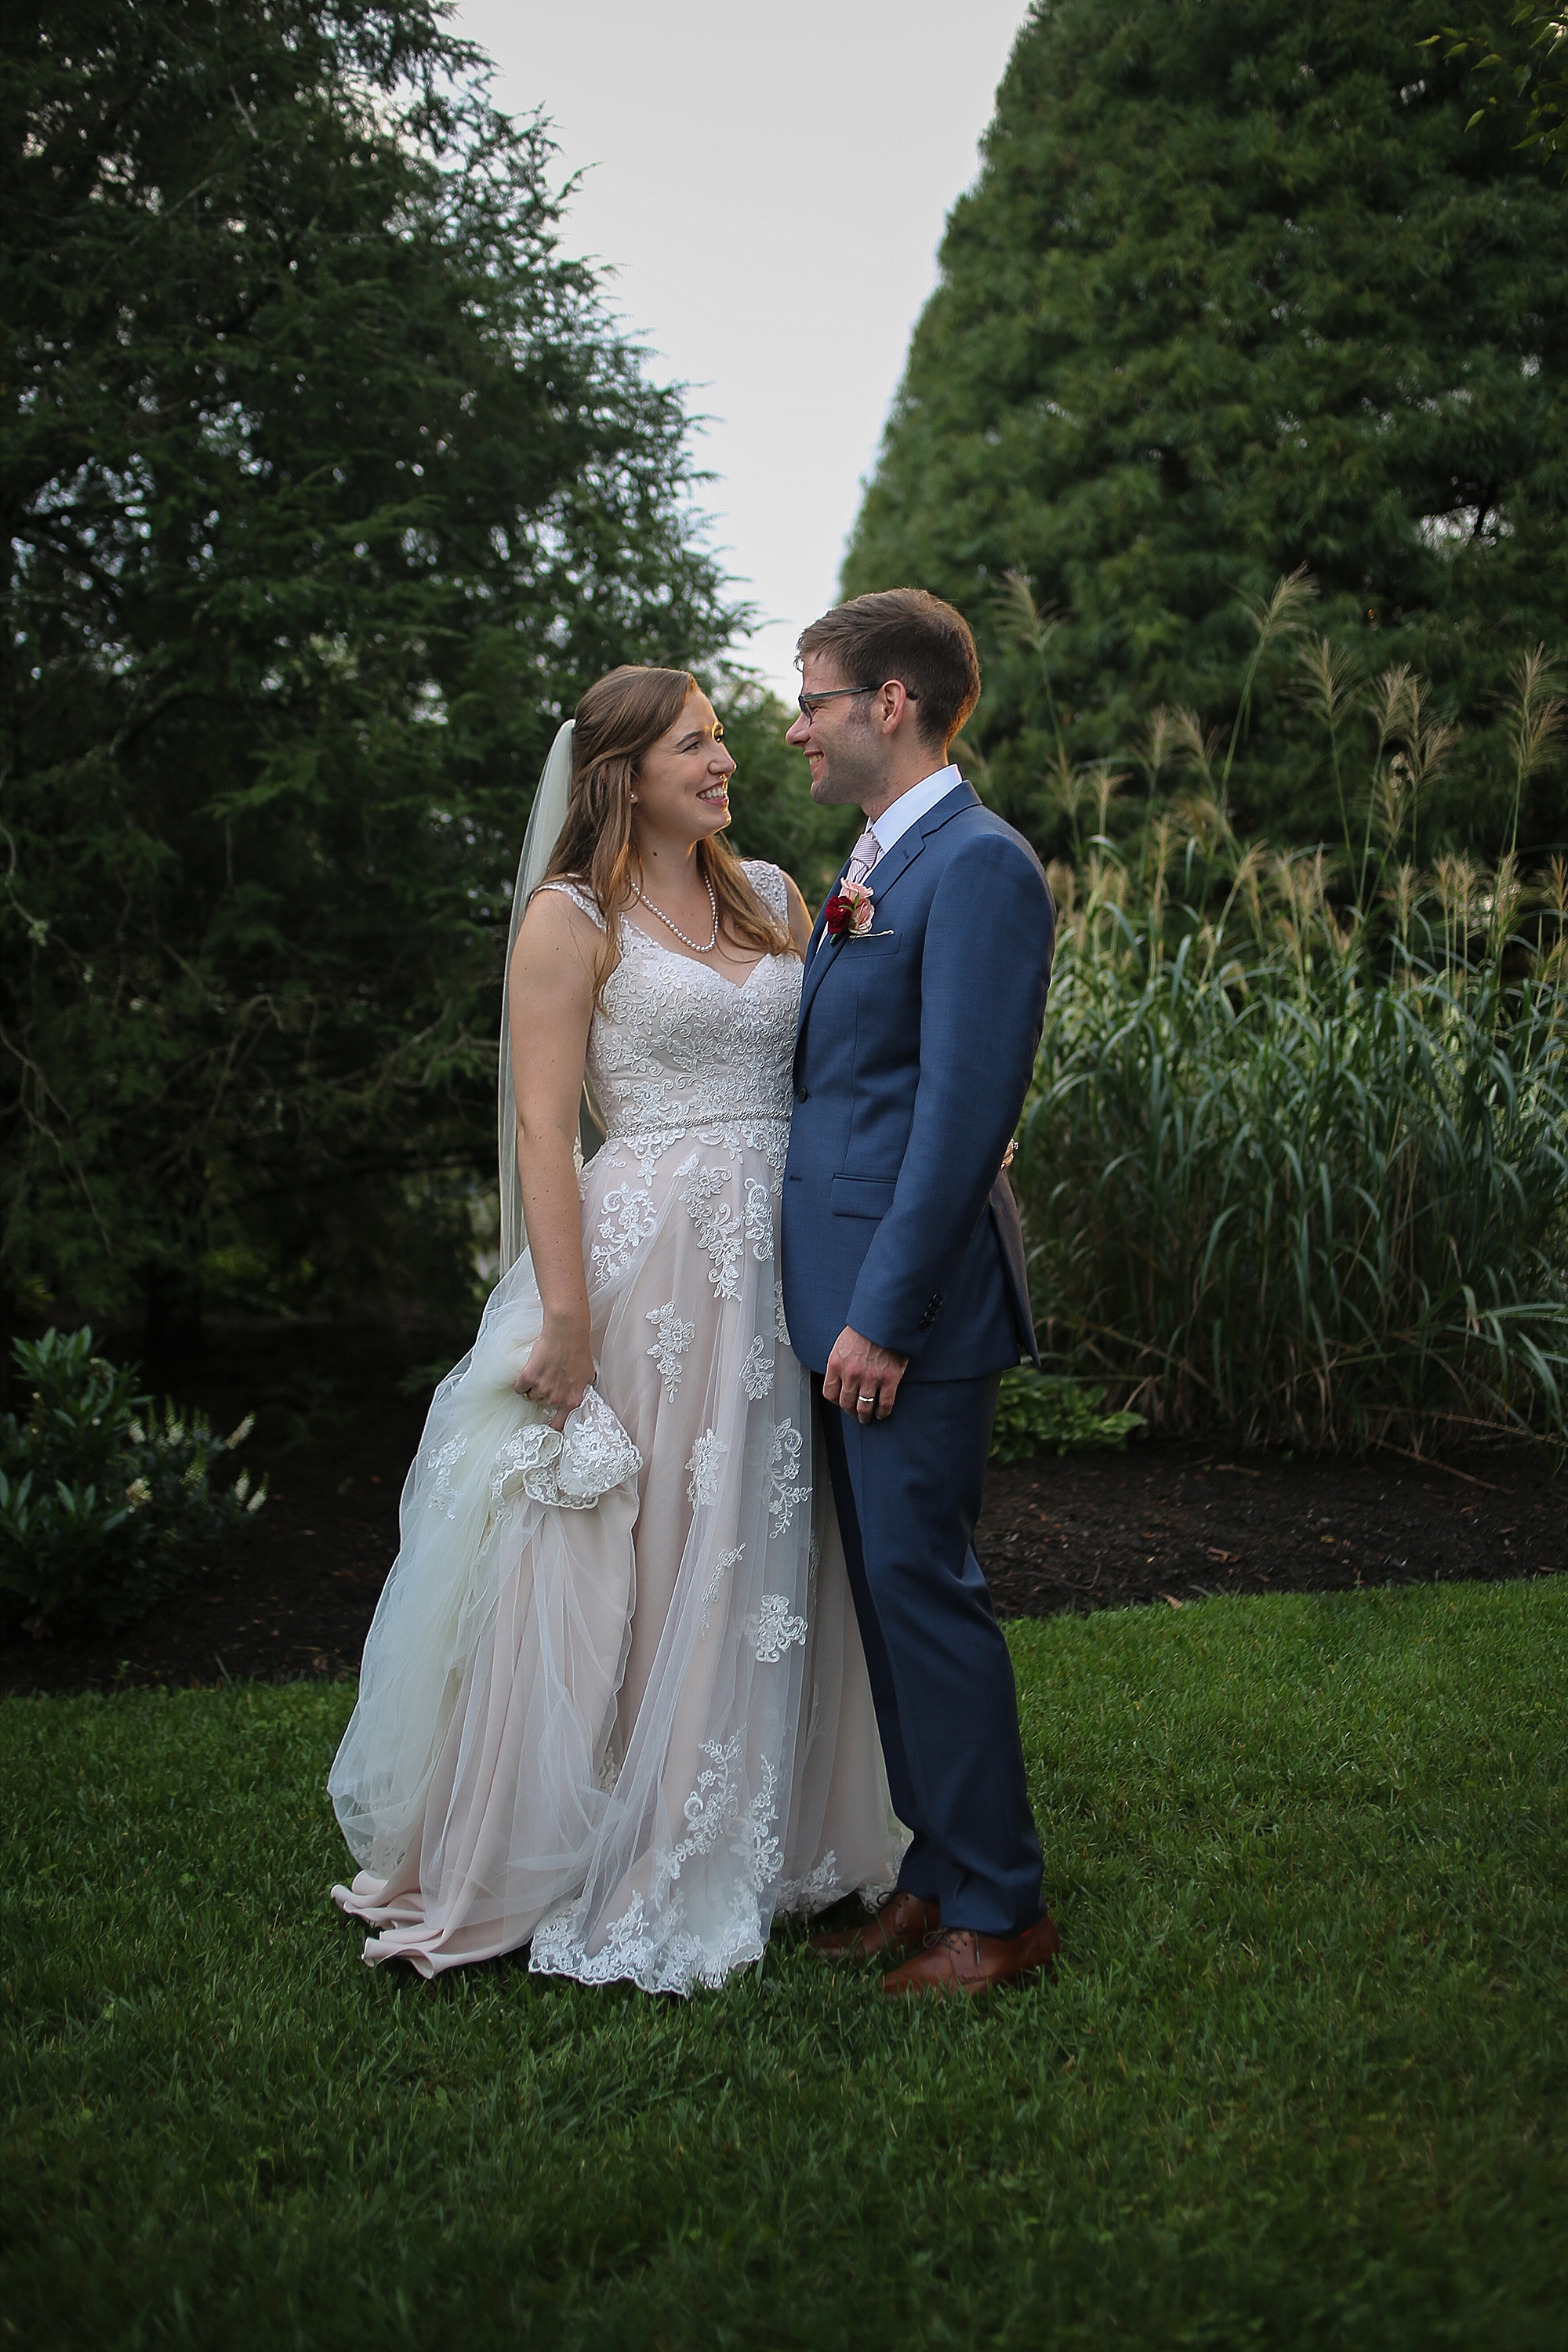 Russell + Emily's German Club at Virginia Tech Wedding | Blacksburg, Virginia Wedding Photographer, Holly Cromer